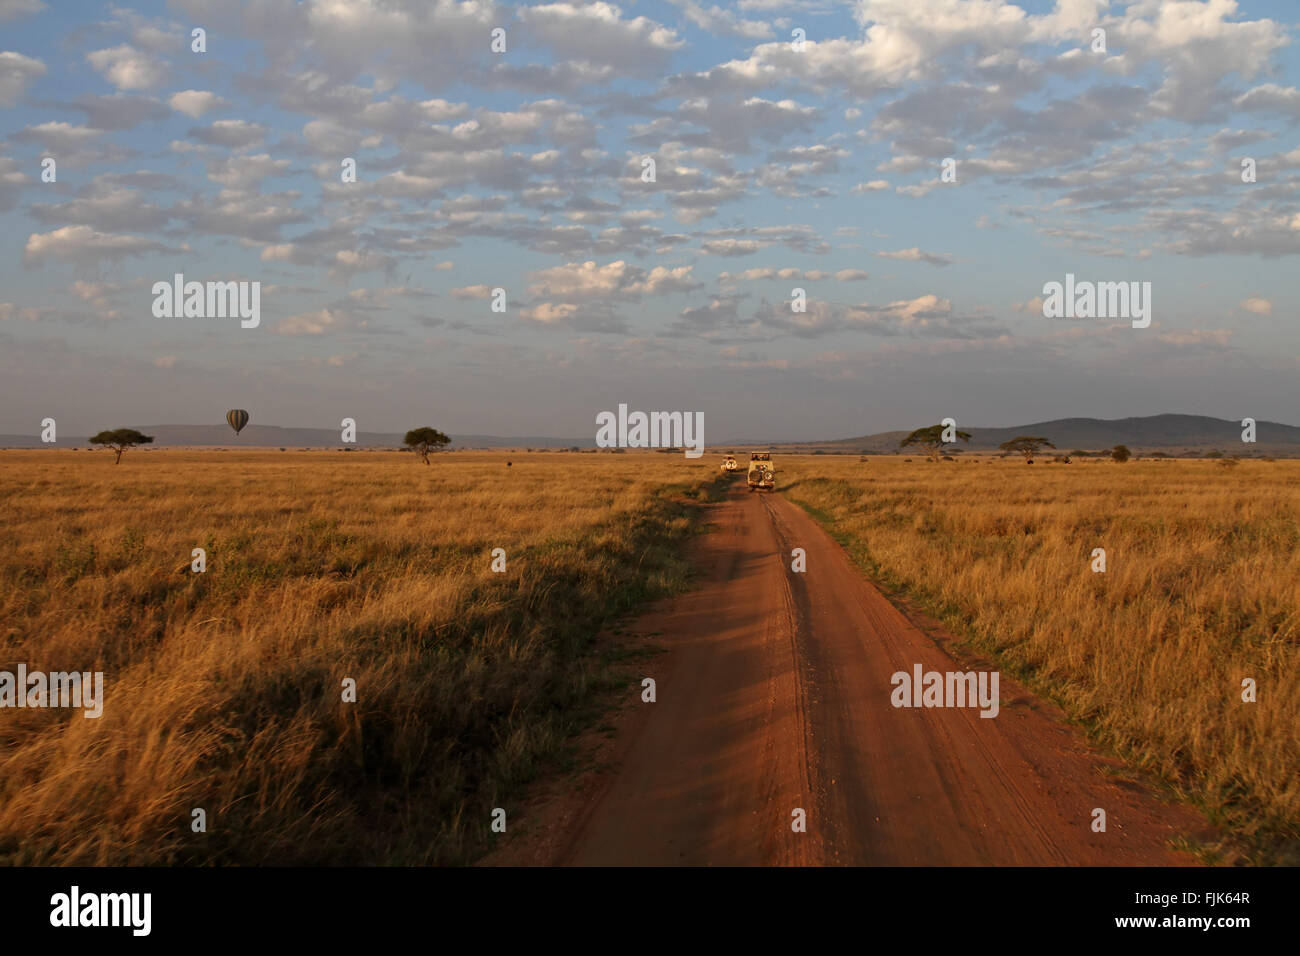 Road through the serengeti displaying different modes of transportation from safari truck to balloon. - Stock Image